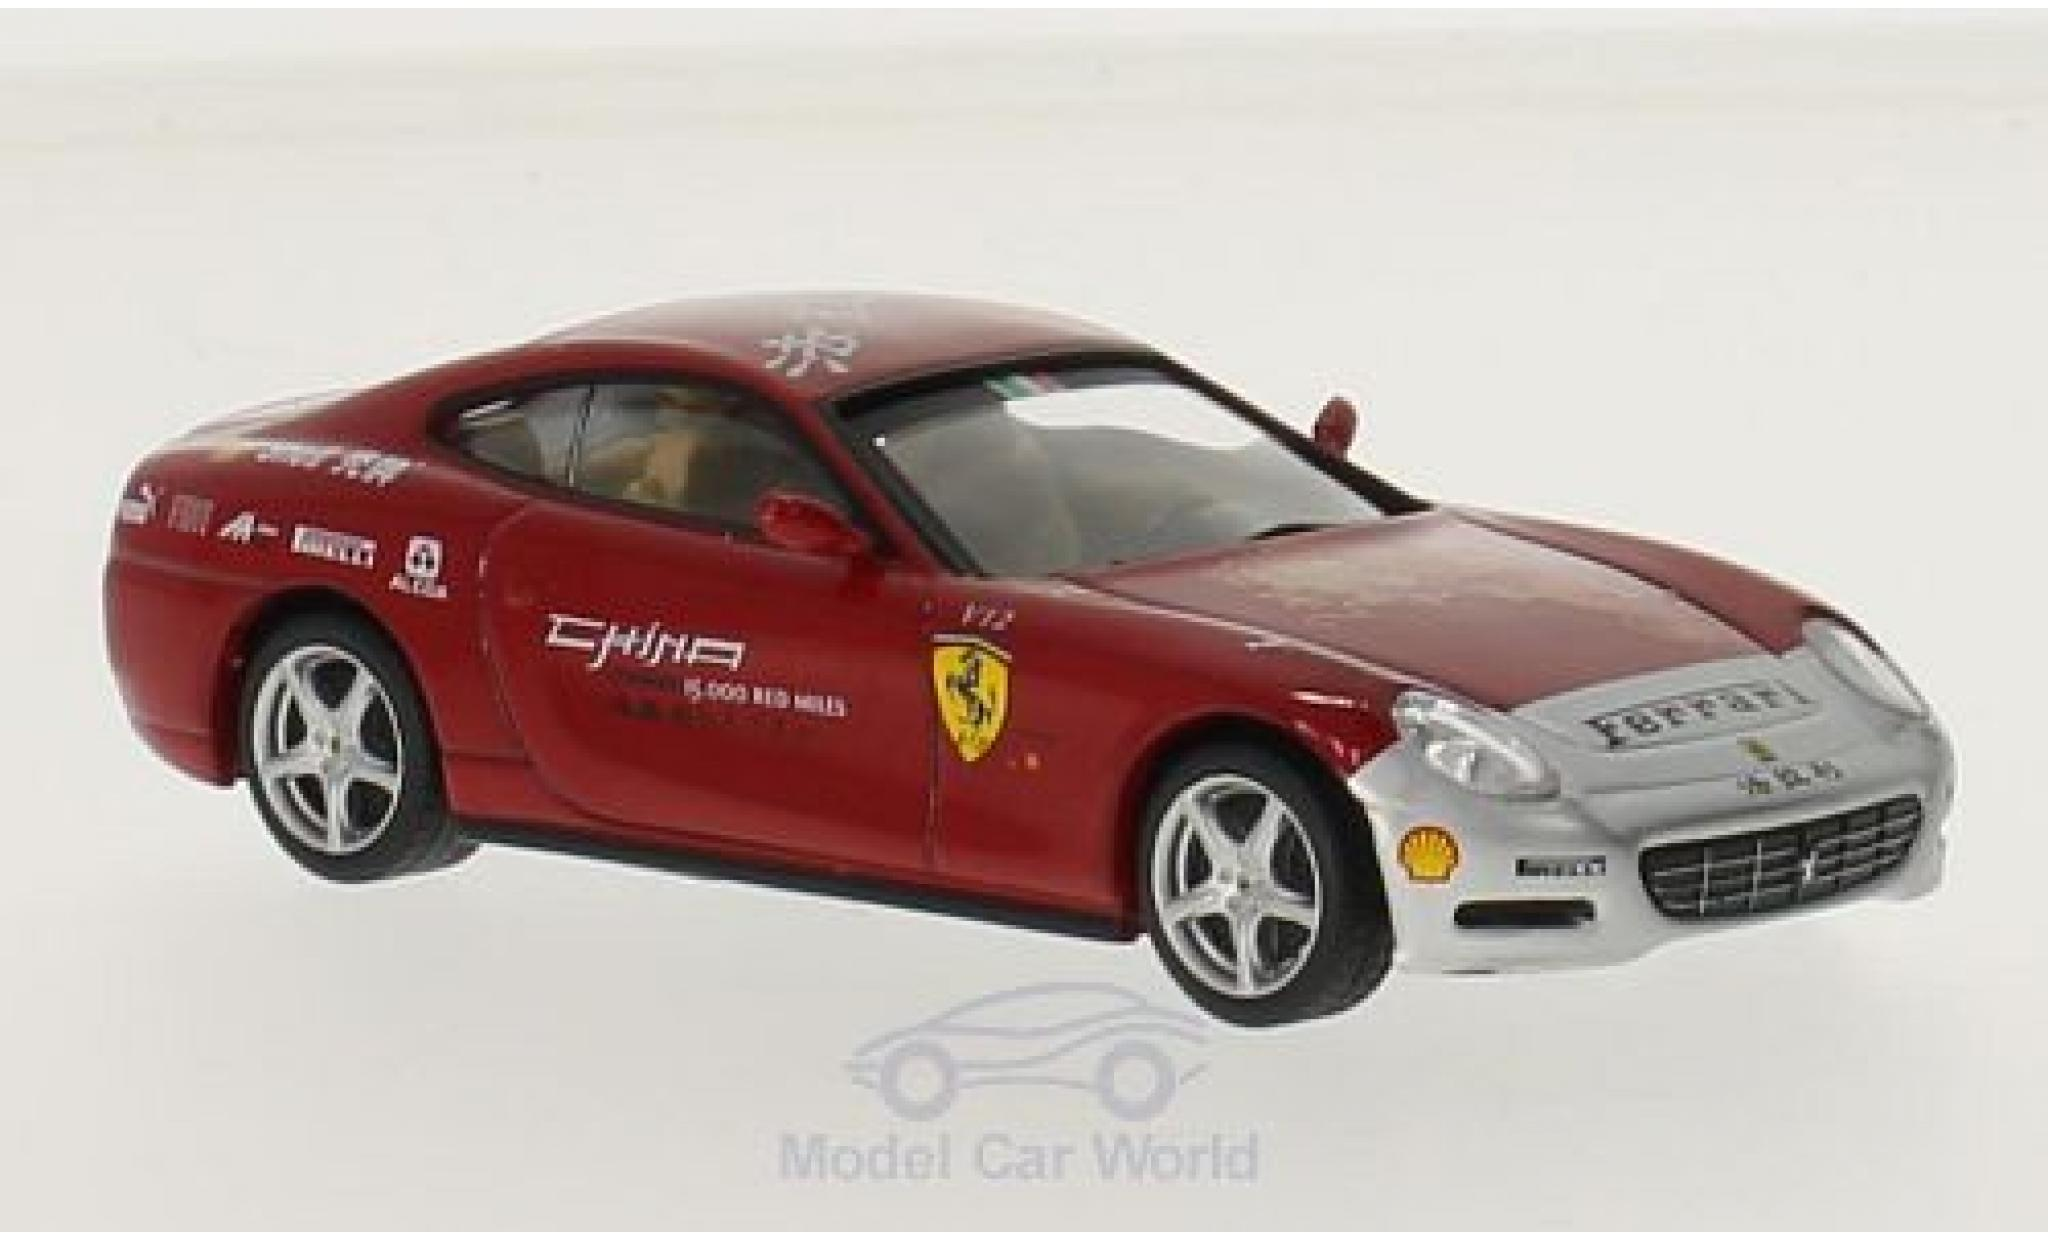 Ferrari 612 1/43 SpecialC 45 Scaglietti red China Tour ohne Vitrine